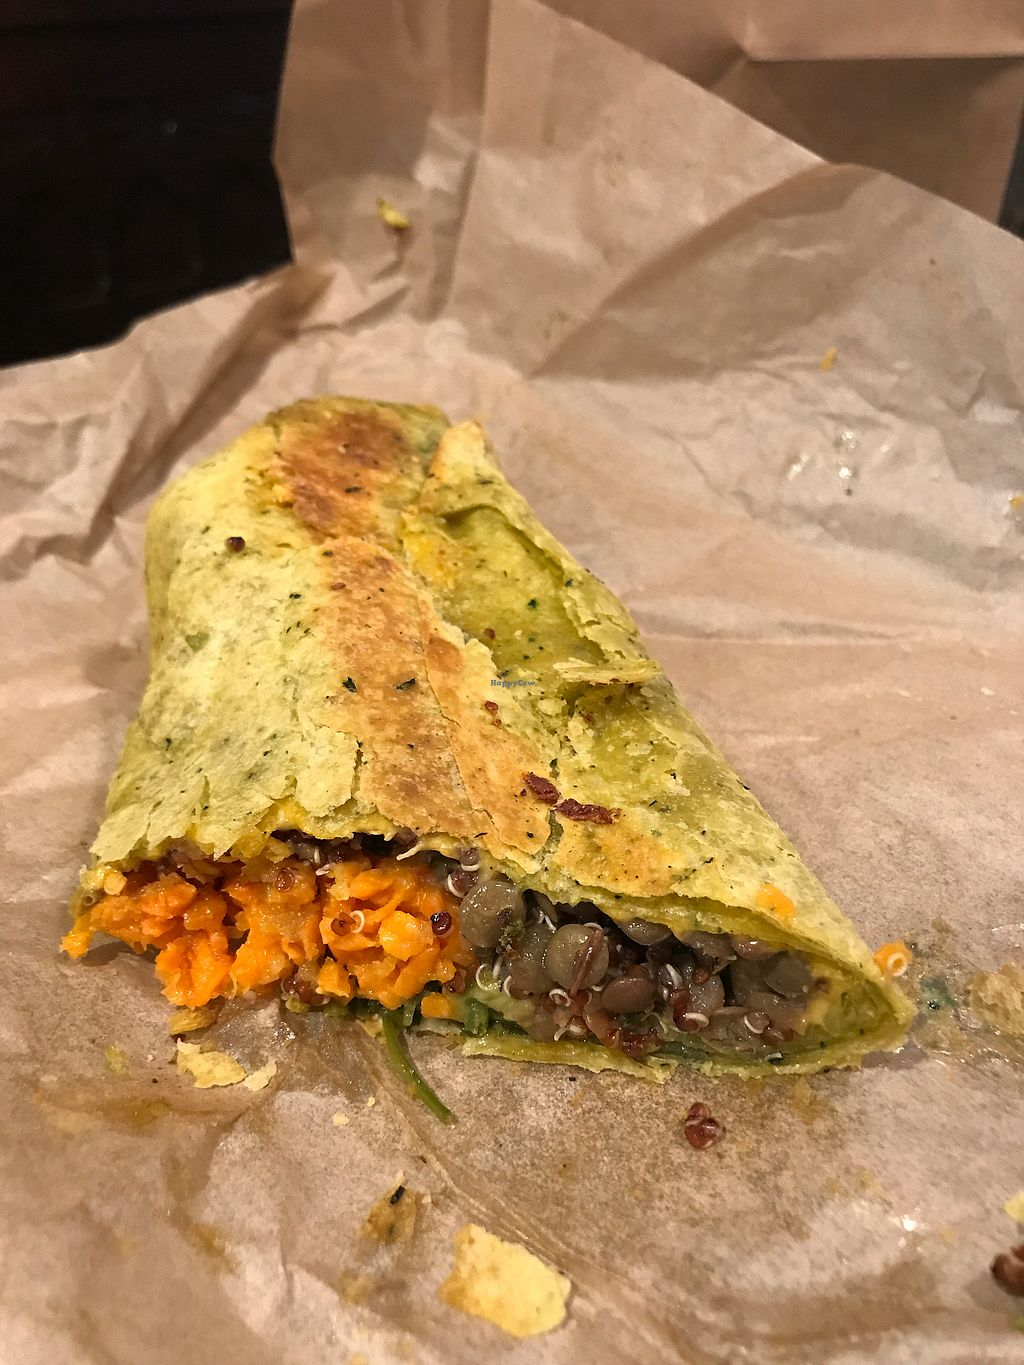 """Photo of Lola's Cafe  by <a href=""""/members/profile/Bex2017"""">Bex2017</a> <br/>Vegan Breakfast Burrito Togo - Yum!!  <br/> October 23, 2017  - <a href='/contact/abuse/image/92451/318010'>Report</a>"""